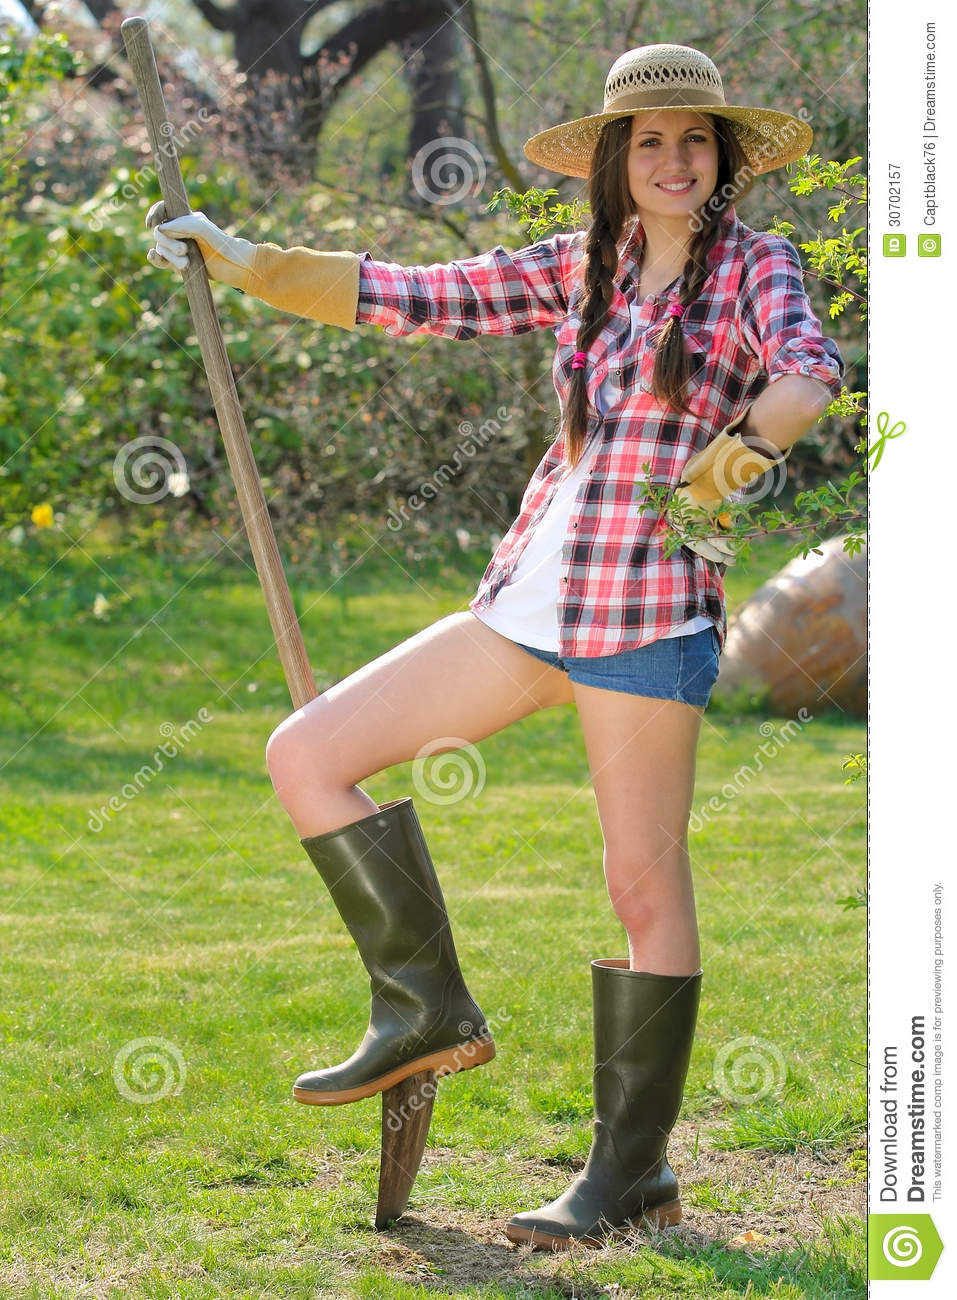 Country Western Stock Photos Royalty Free Country Western